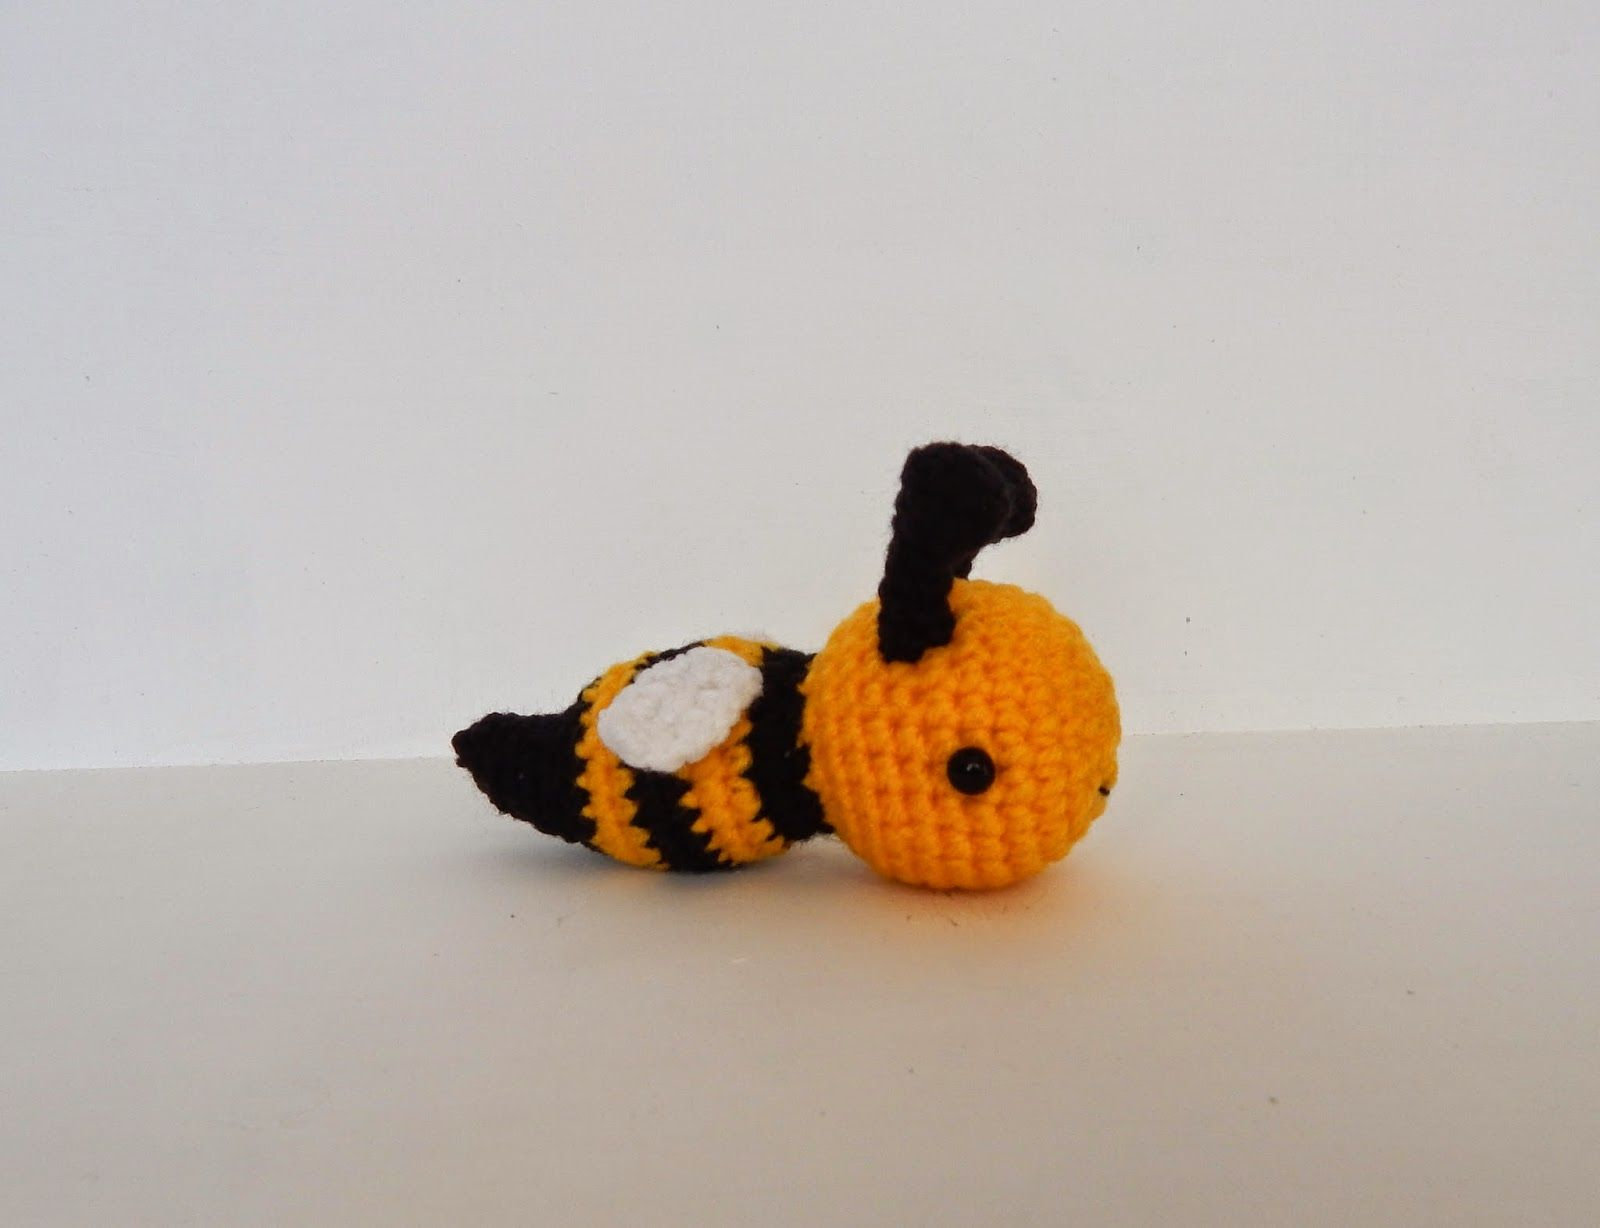 A[mi]dorable Crochet: Bee Pattern | Muñequitos tejidos | Pinterest ...